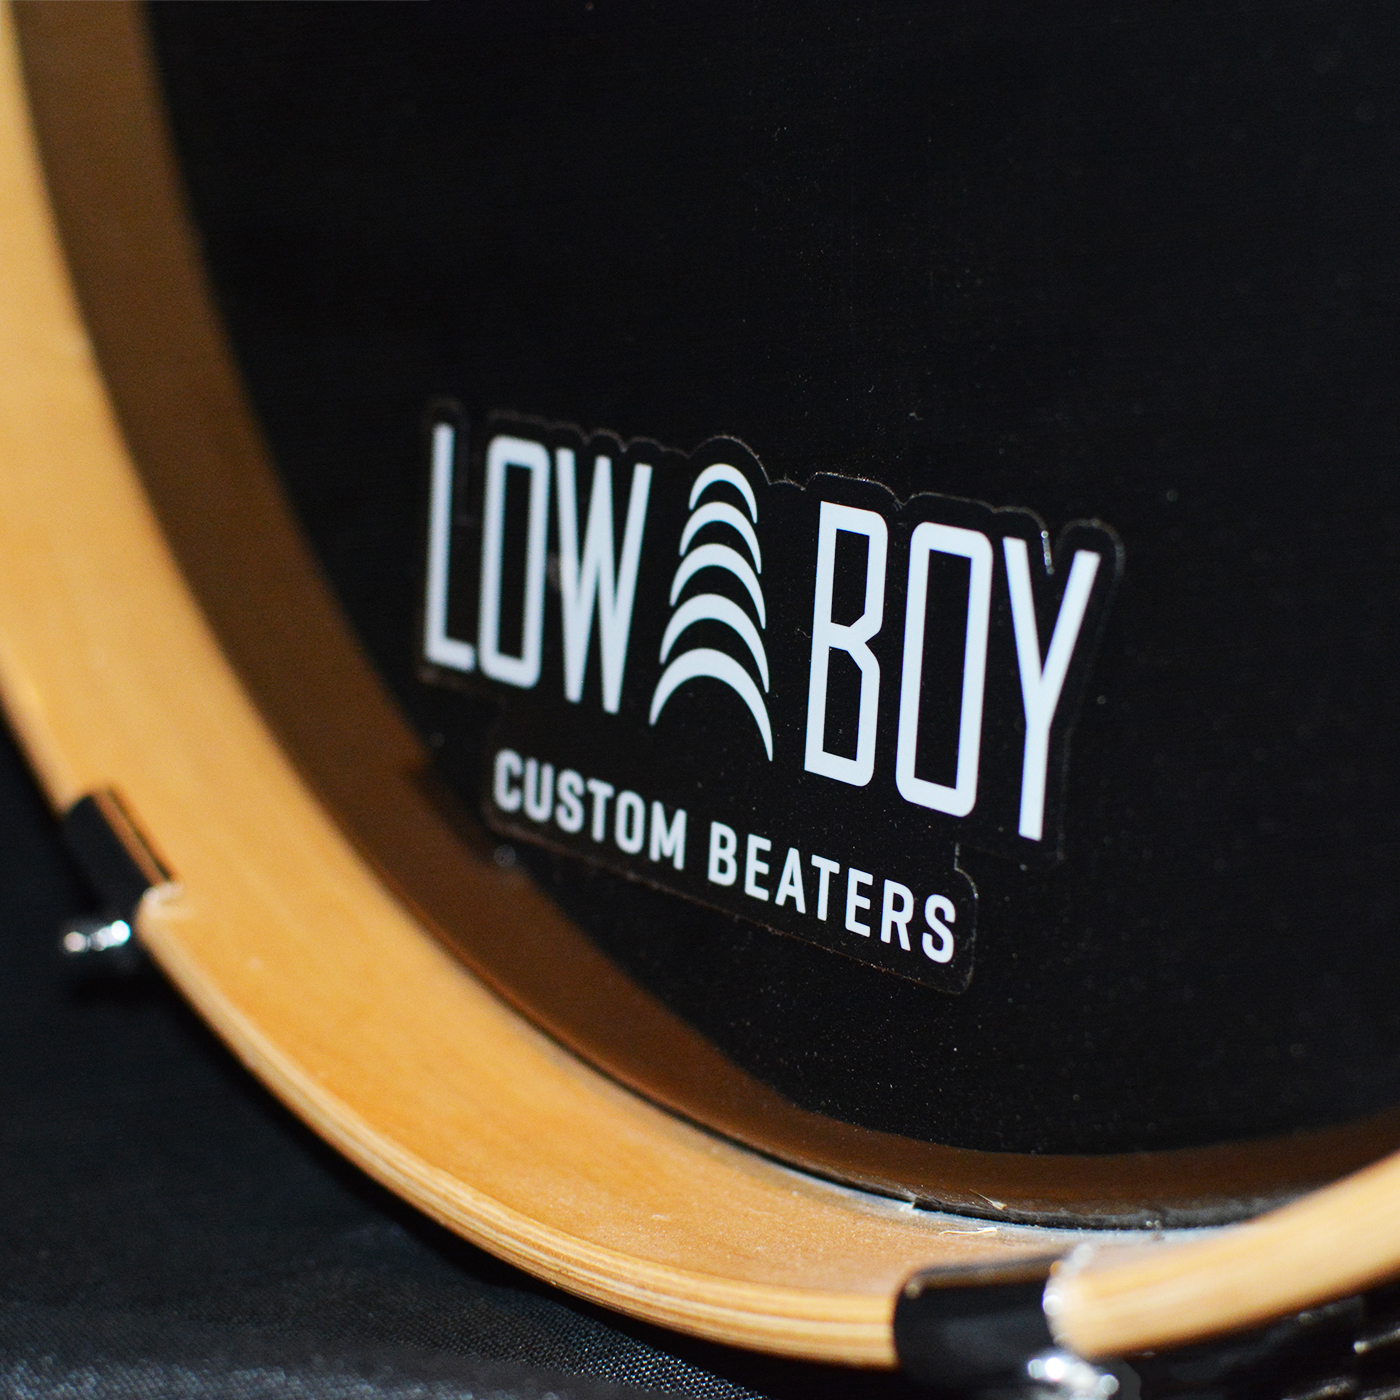 Low Boy White Bass Drum Decal